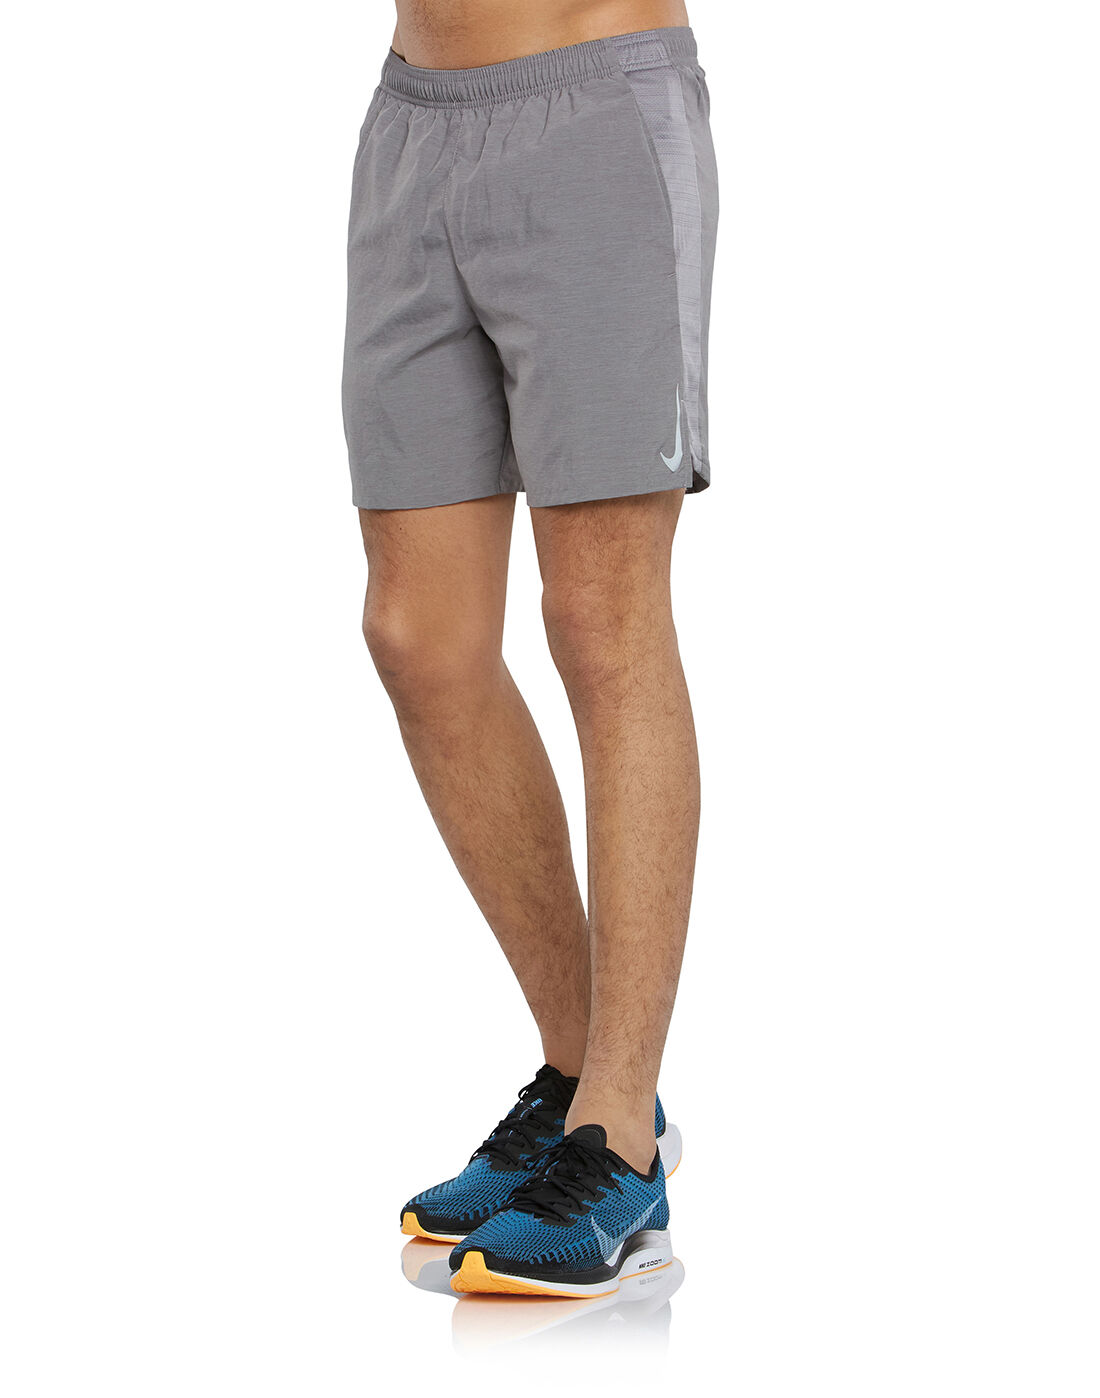 Nike Mens Challenger 7 inch Shorts